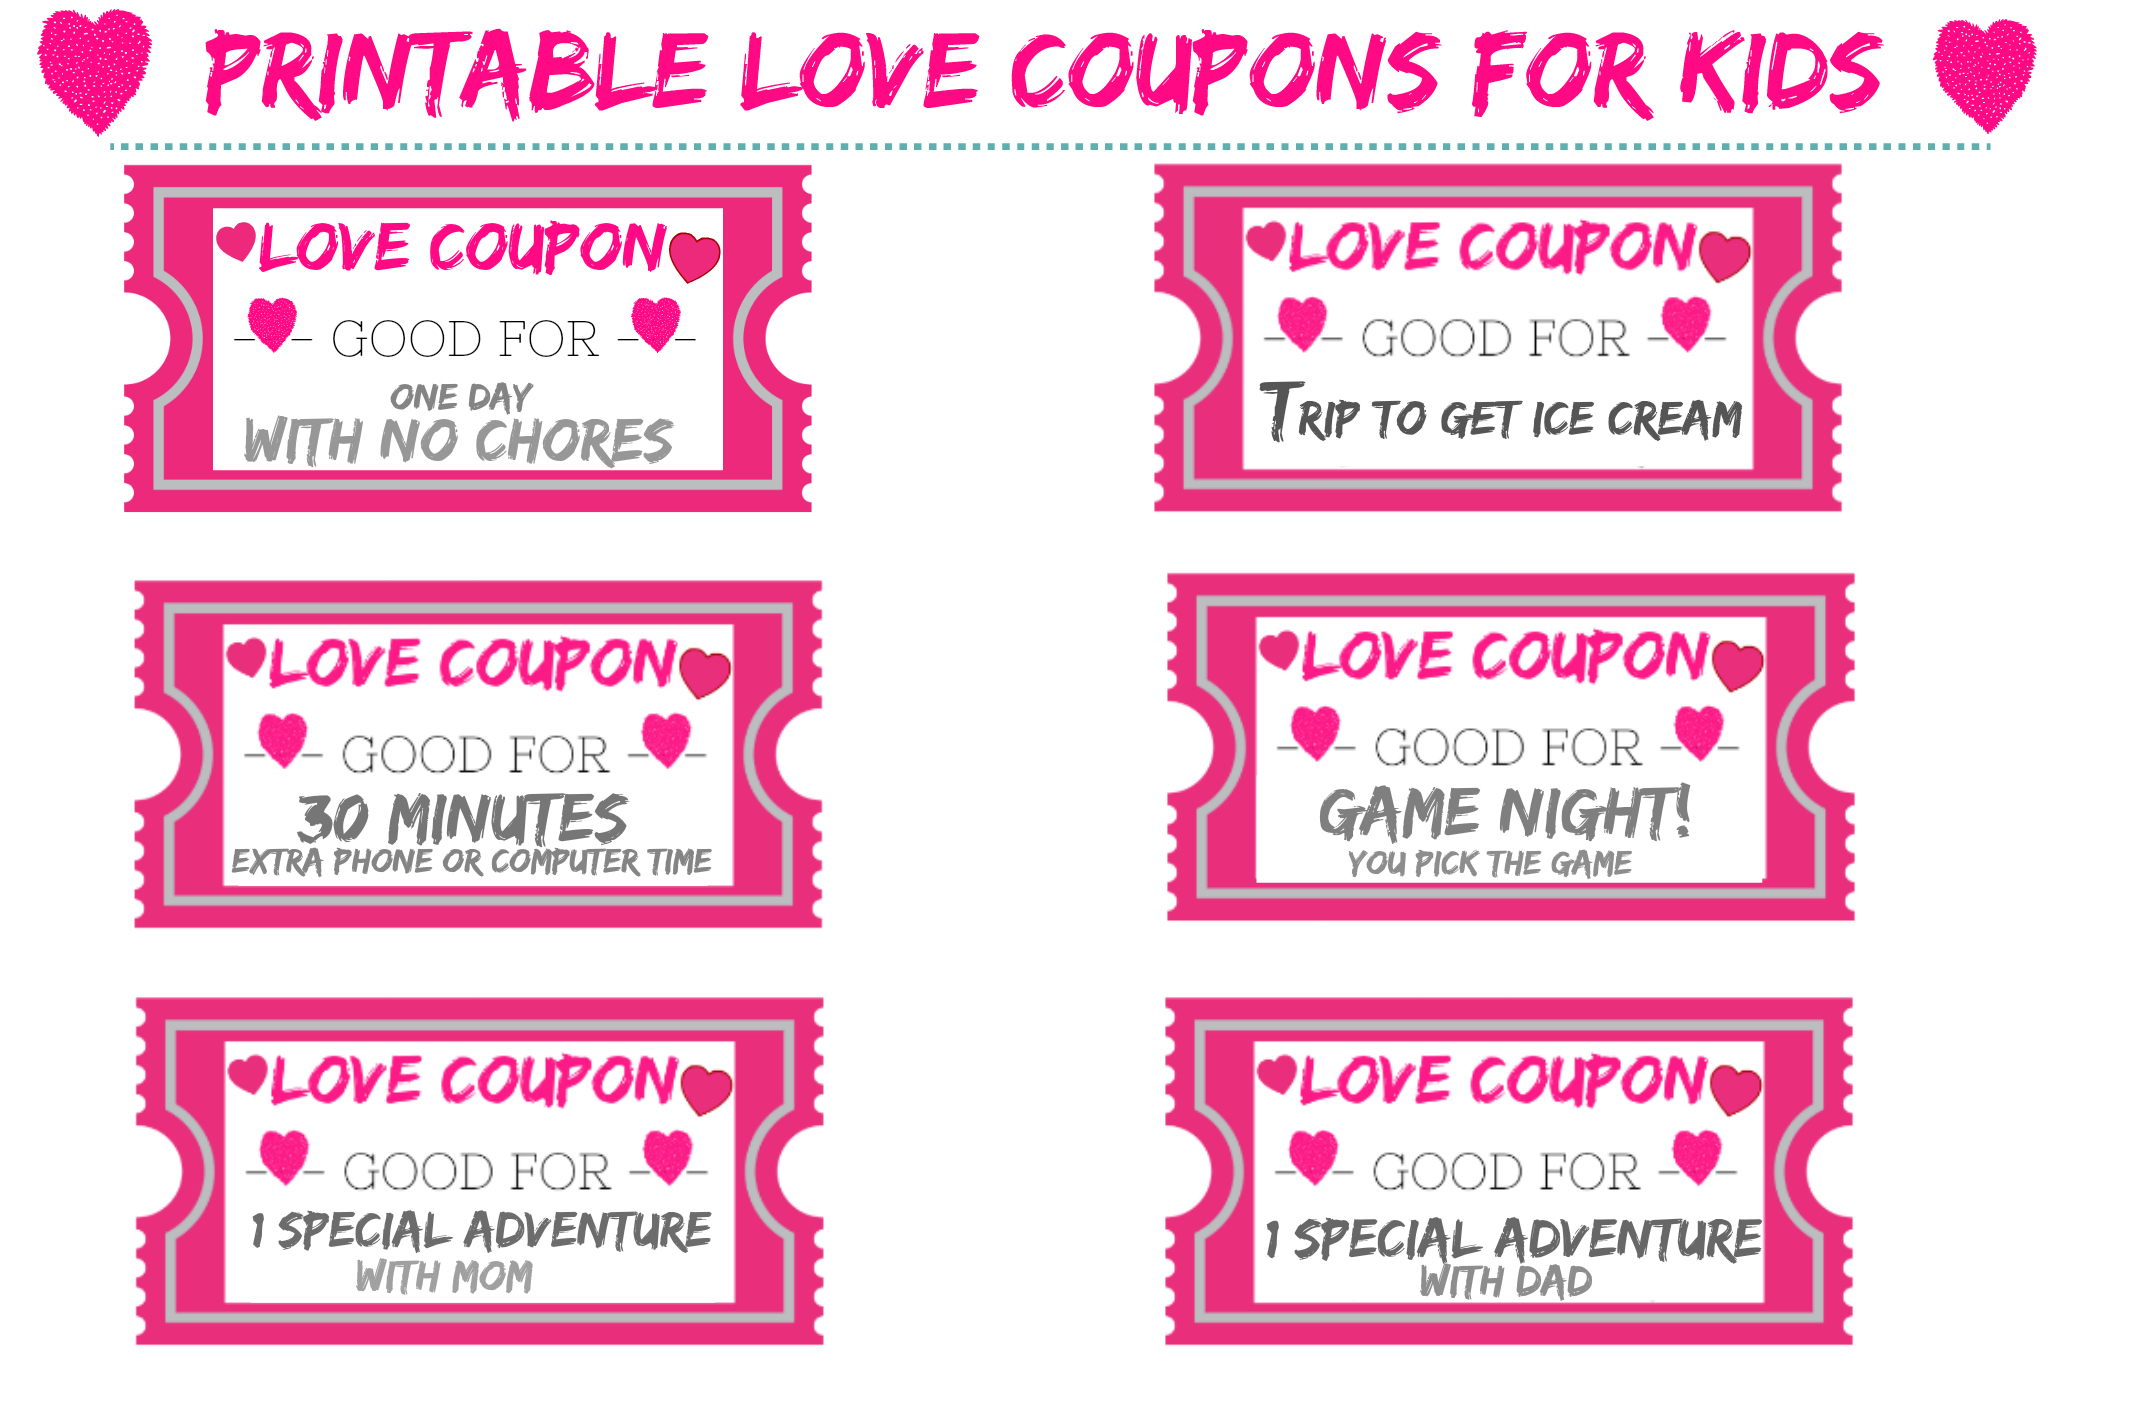 image relating to Printable Coupons for Kids named printable take pleasure in discount coupons for young children for valentines working day Our